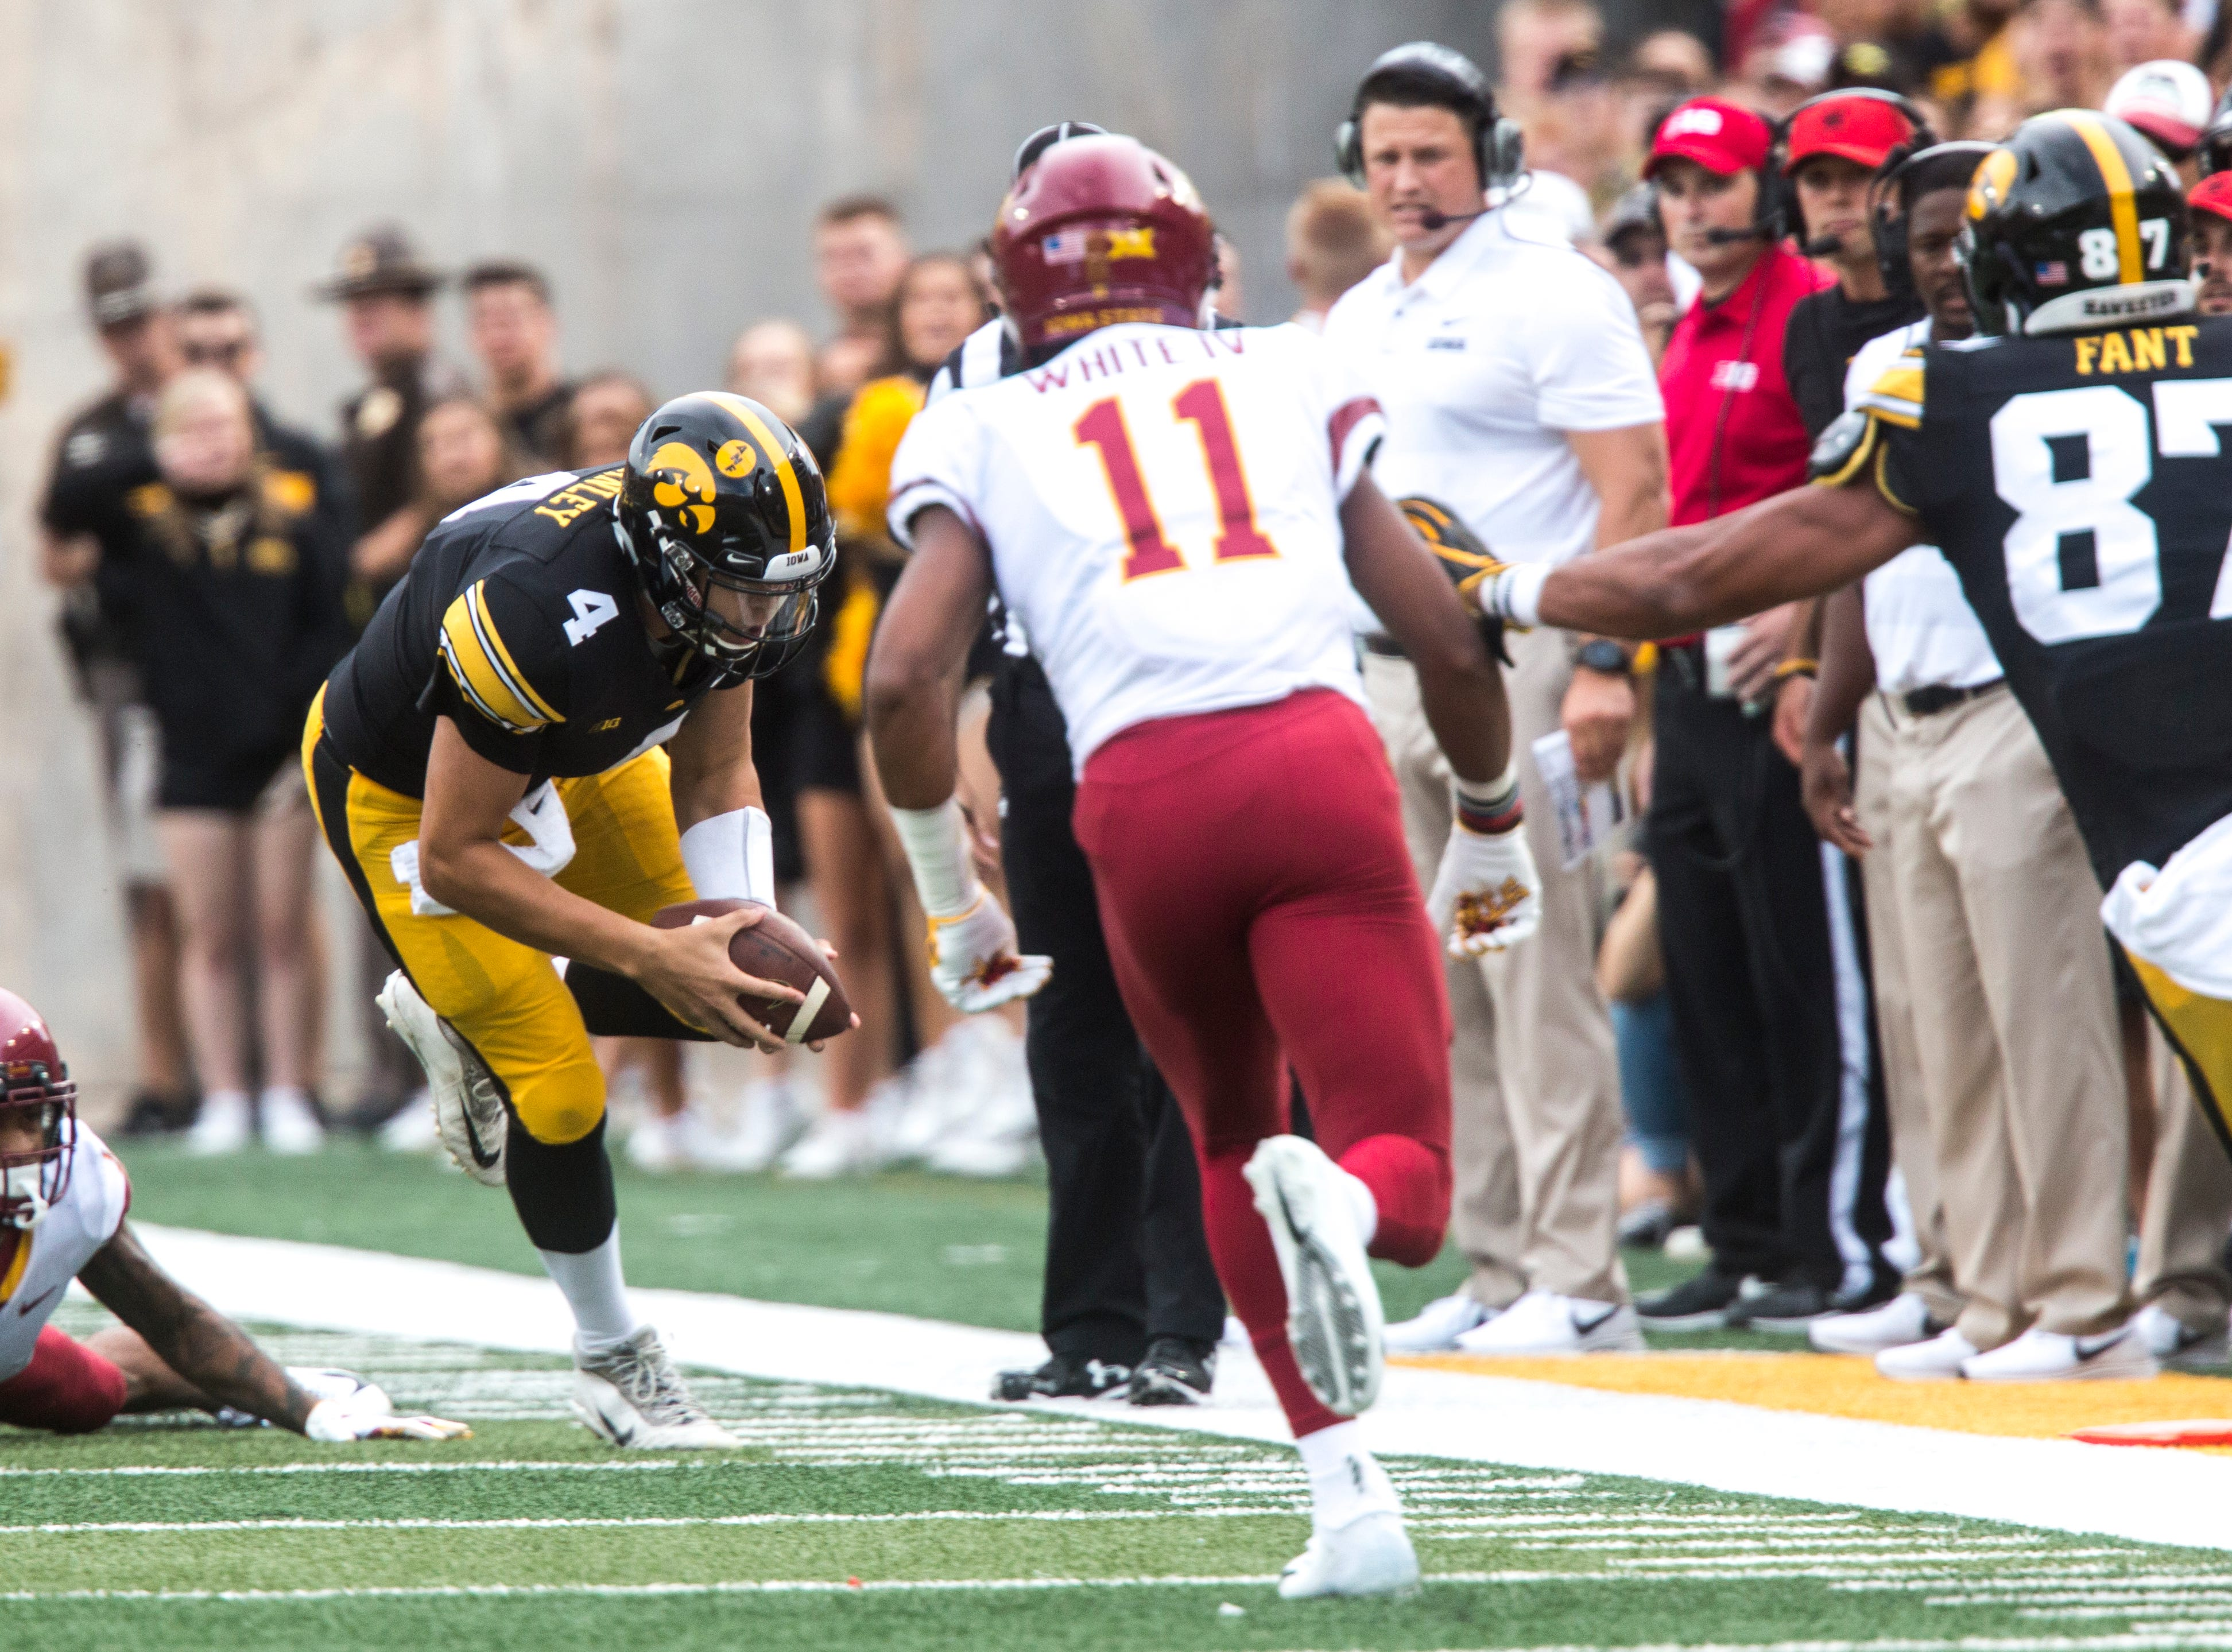 Iowa quarterback Nate Stanley (4) dives towards the side line during the Cy-Hawk NCAA football game on Saturday, Sept. 8, 2018, at Kinnick Stadium in Iowa City.